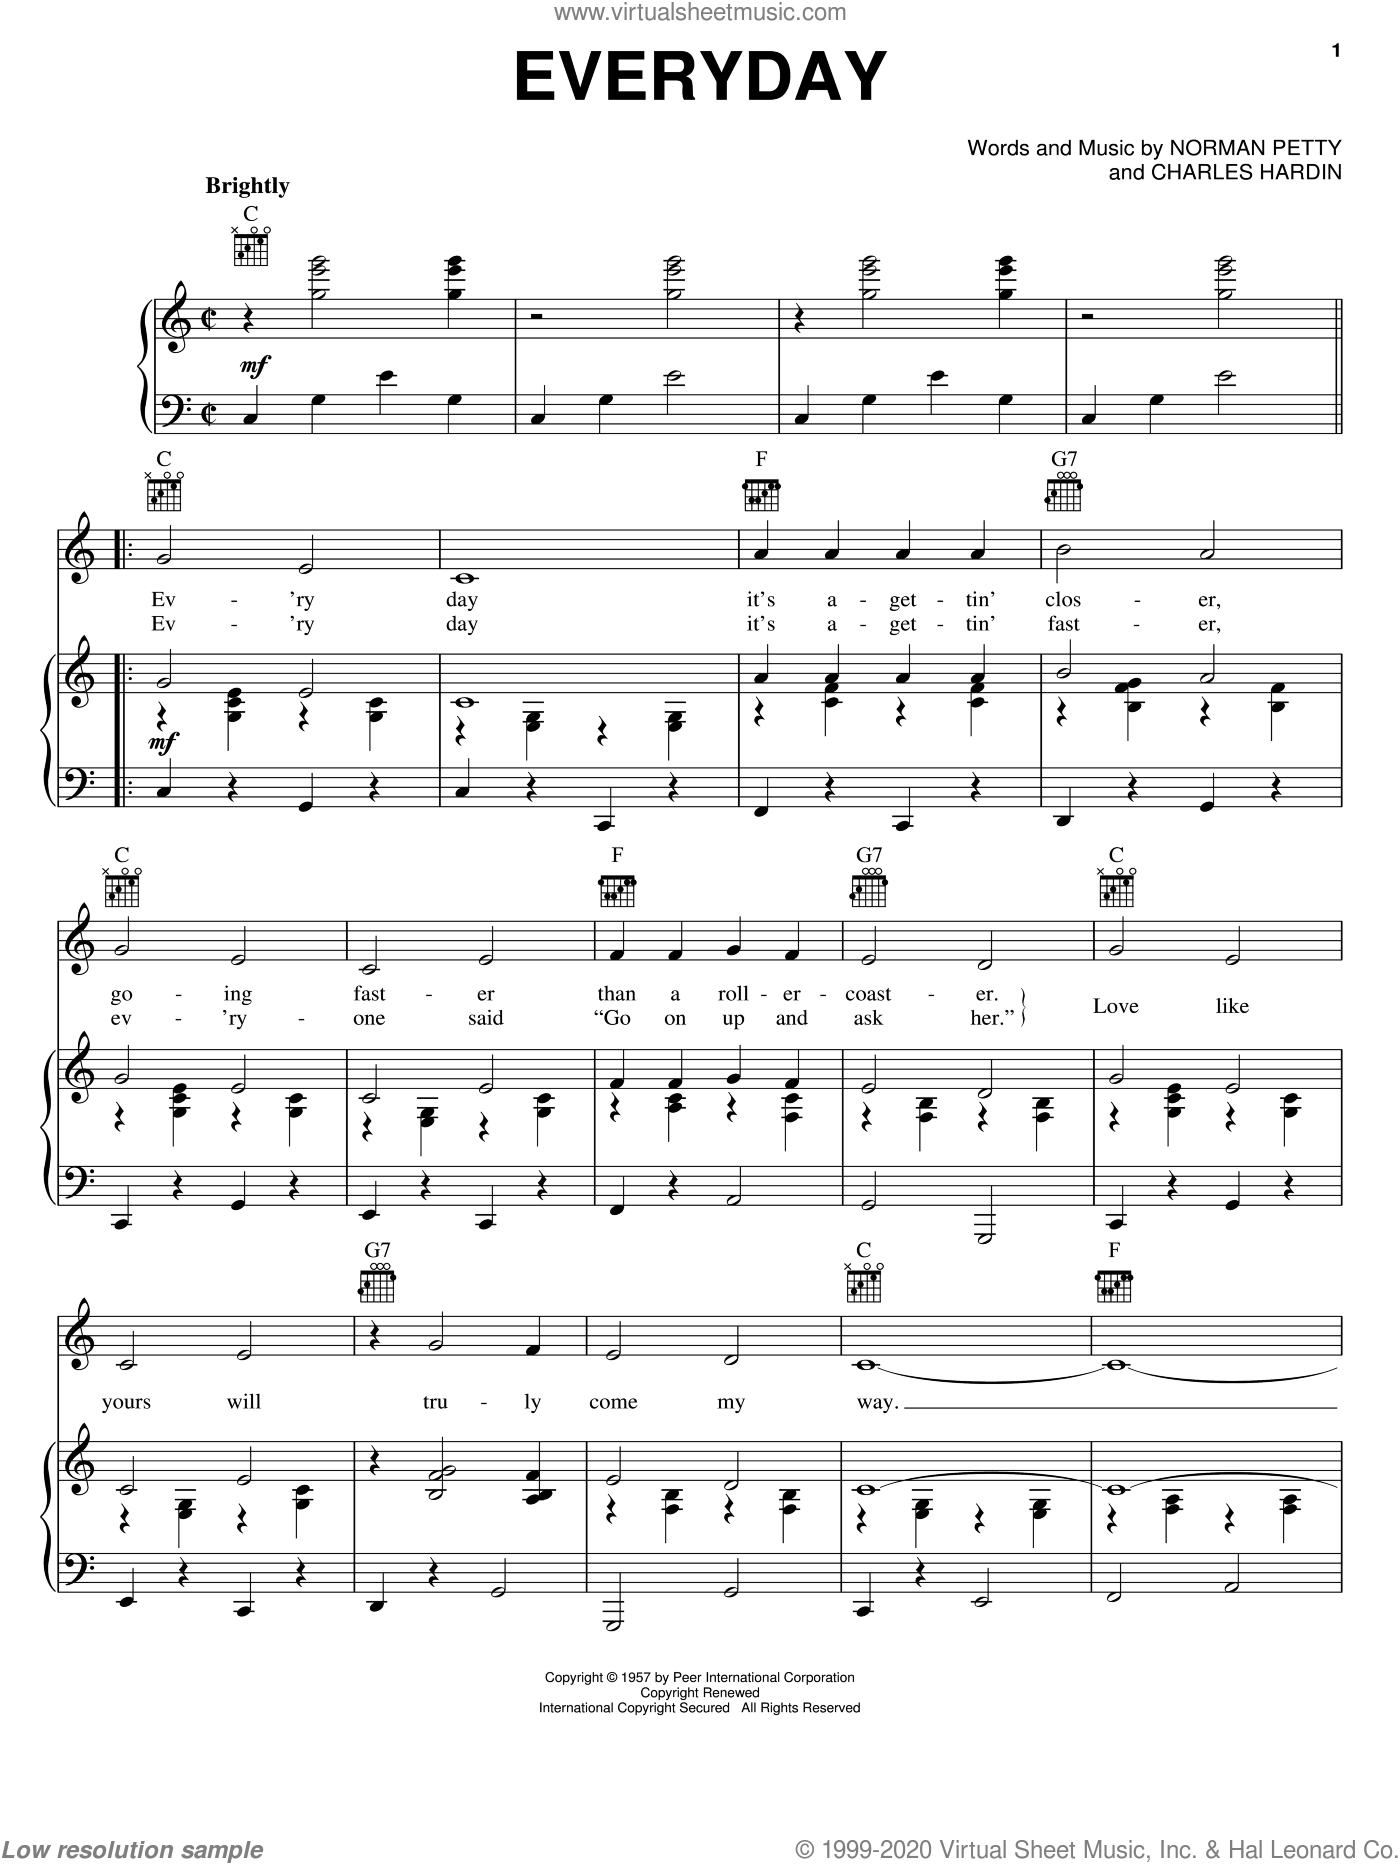 Everyday sheet music for voice, piano or guitar by Buddy Holly, Charles Hardin and Norman Petty, intermediate skill level